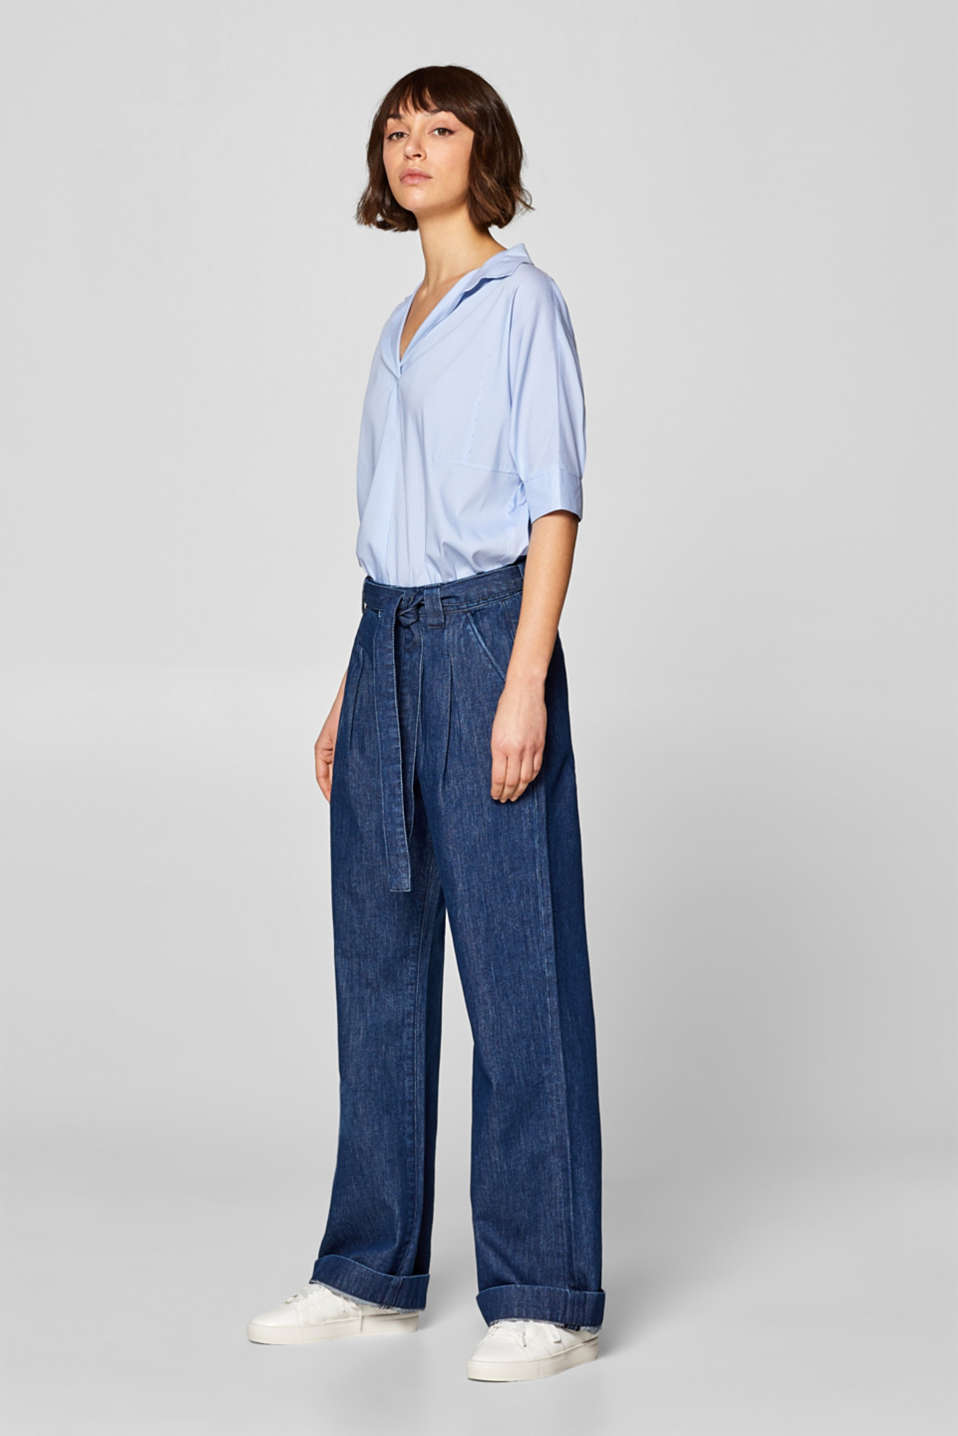 edc - Stretch jeans with a high waistband and a wide leg